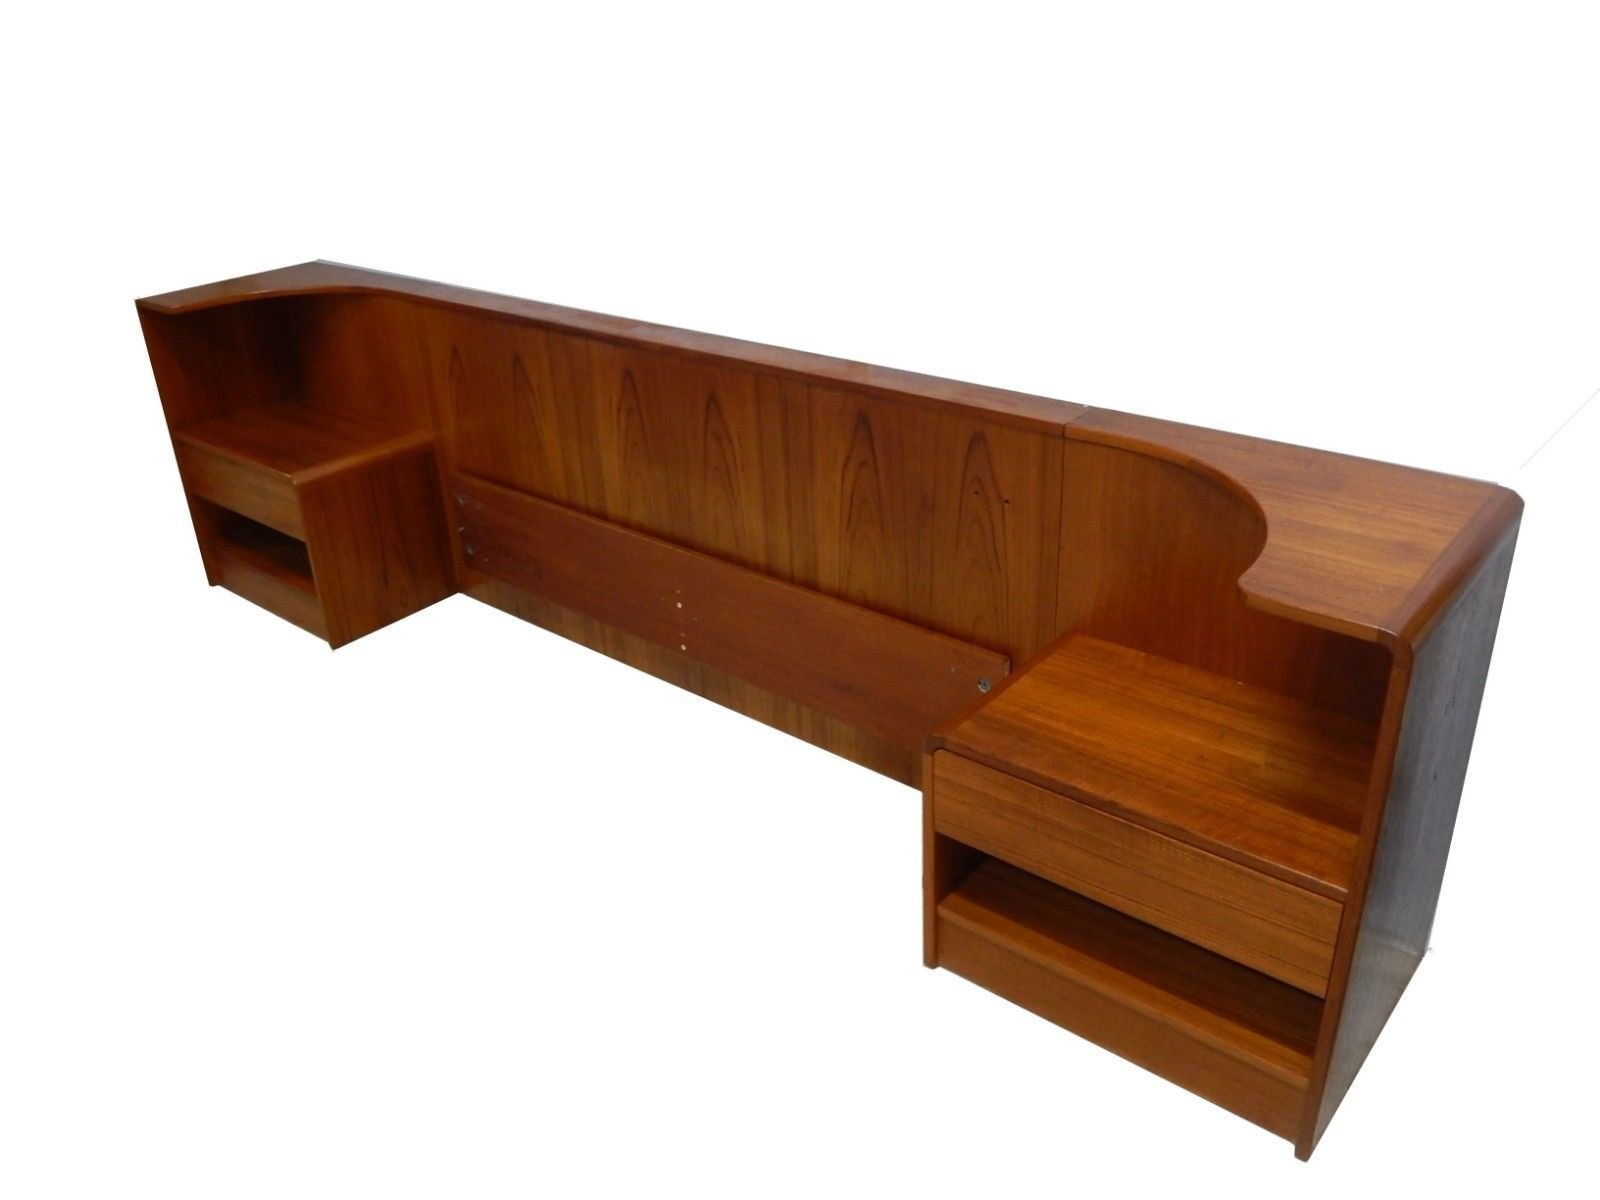 Photo 9 Of 10 In 10 Midcentury Modern Headboards To Elevate Your Bedroom Dwell